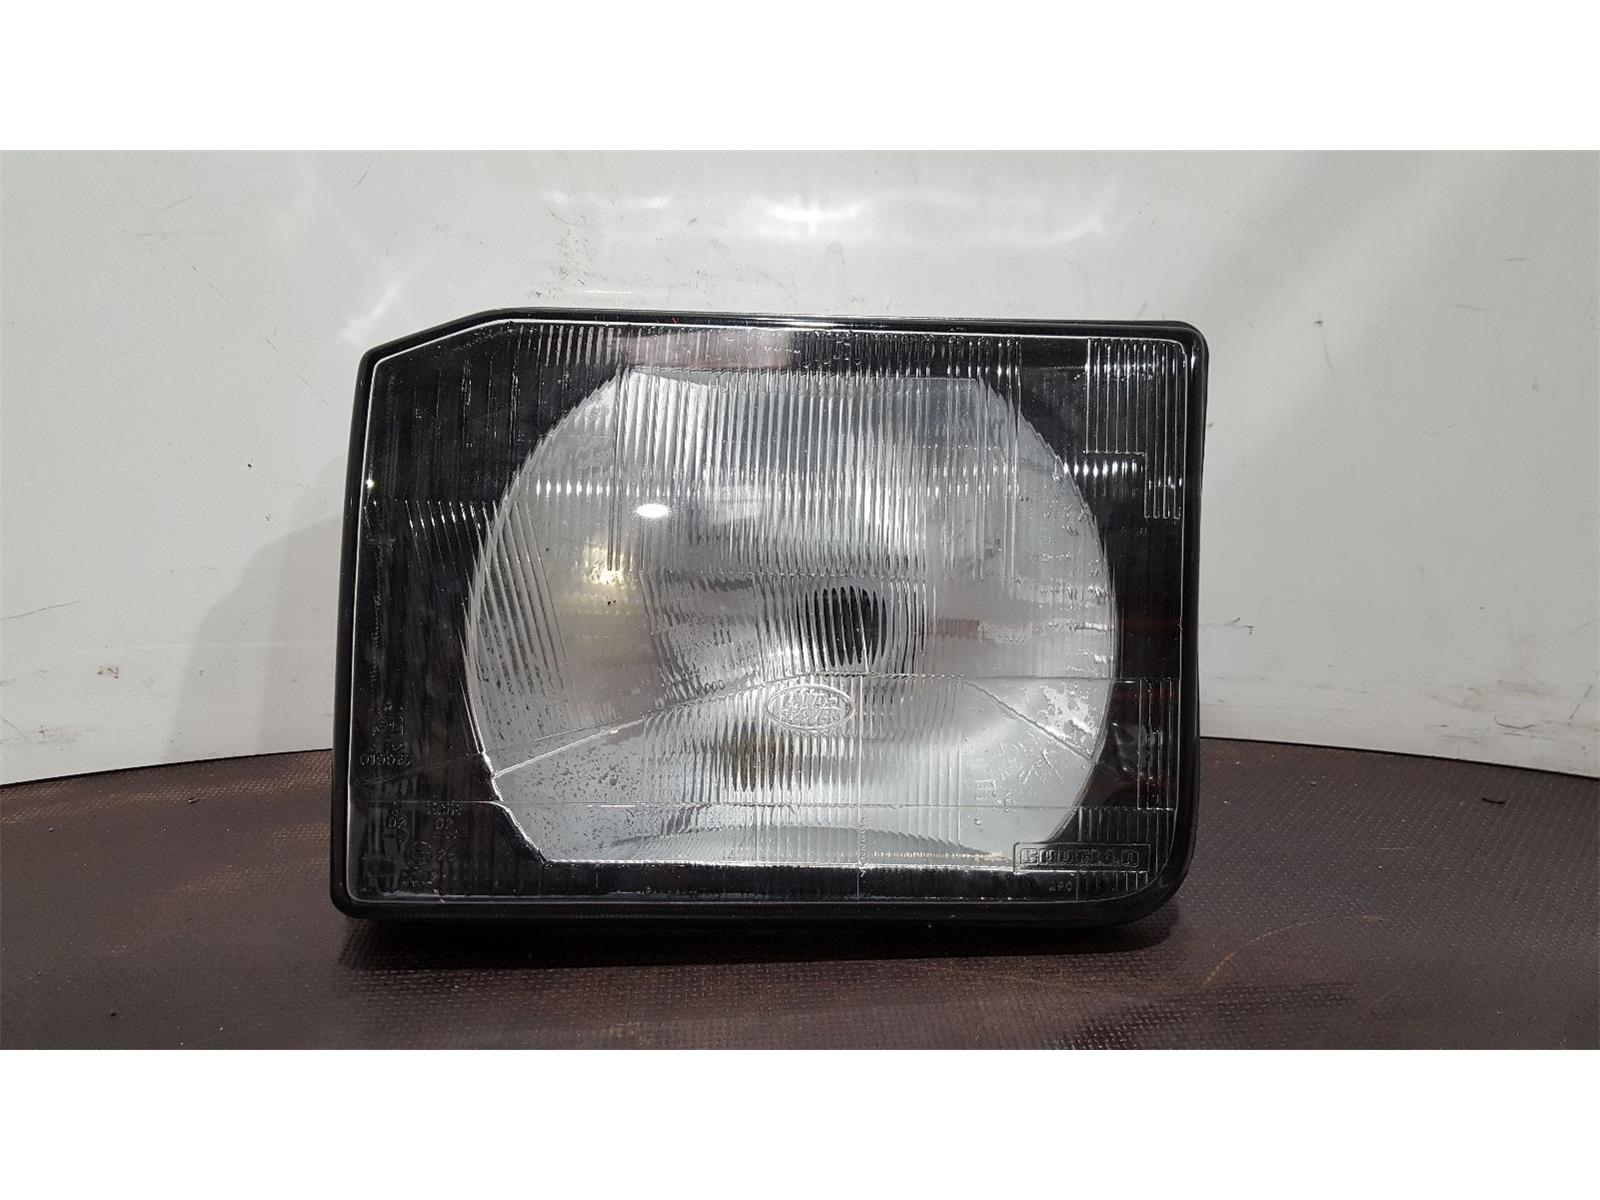 Land Rover Discovery 1998 To 2003 Gs Headlamp Lh Used And Spare Parts N S Left Passengers Headlight